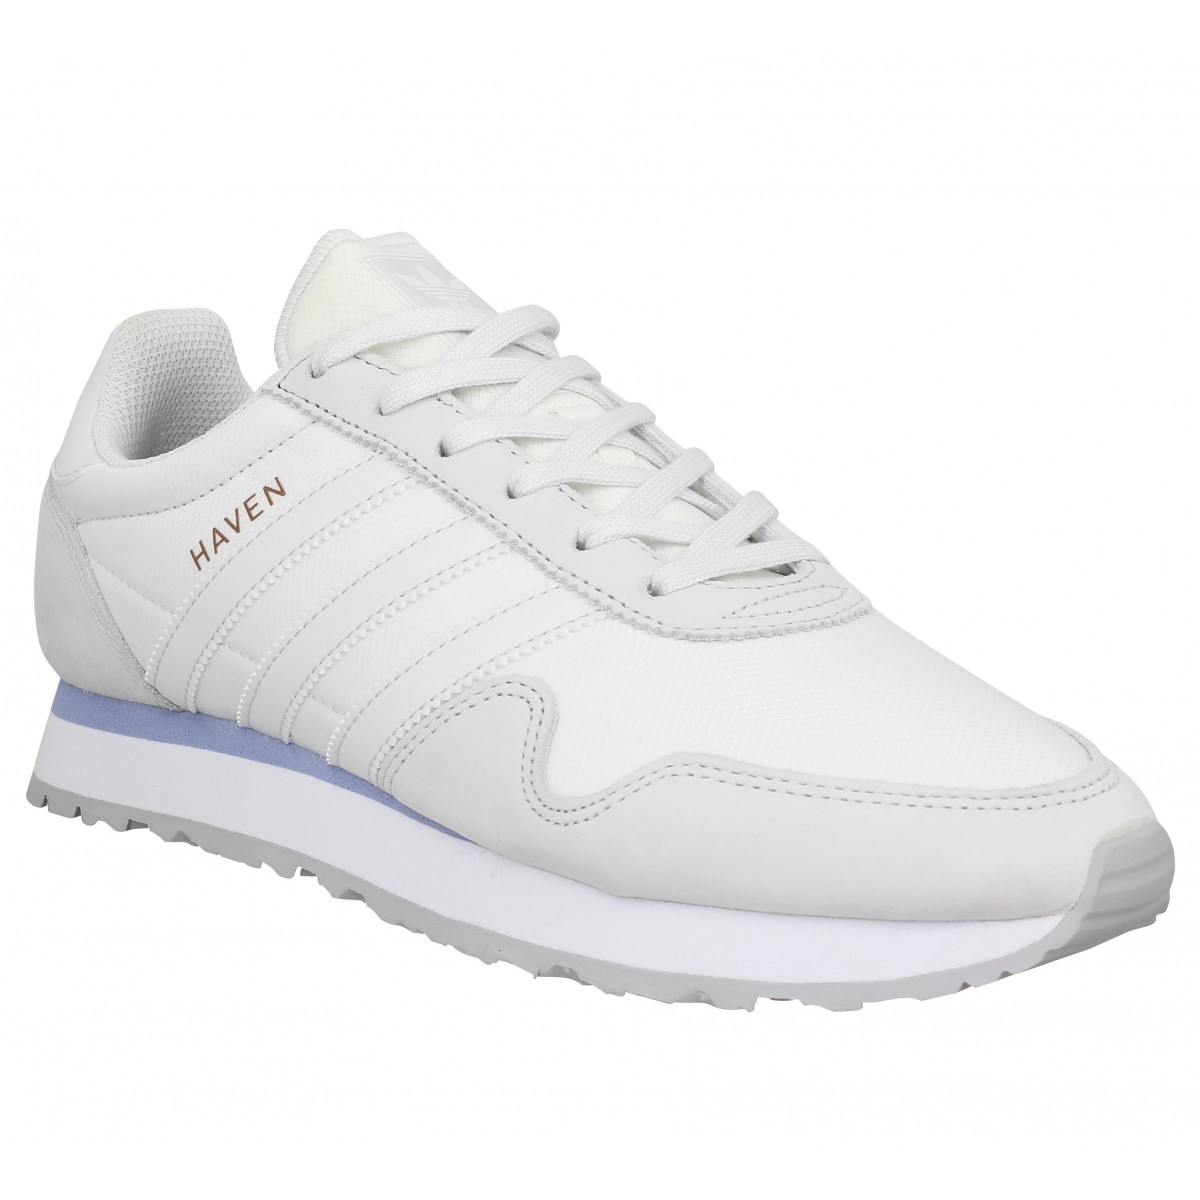 Adidas Marque Haven Toile Homme-40-blanc